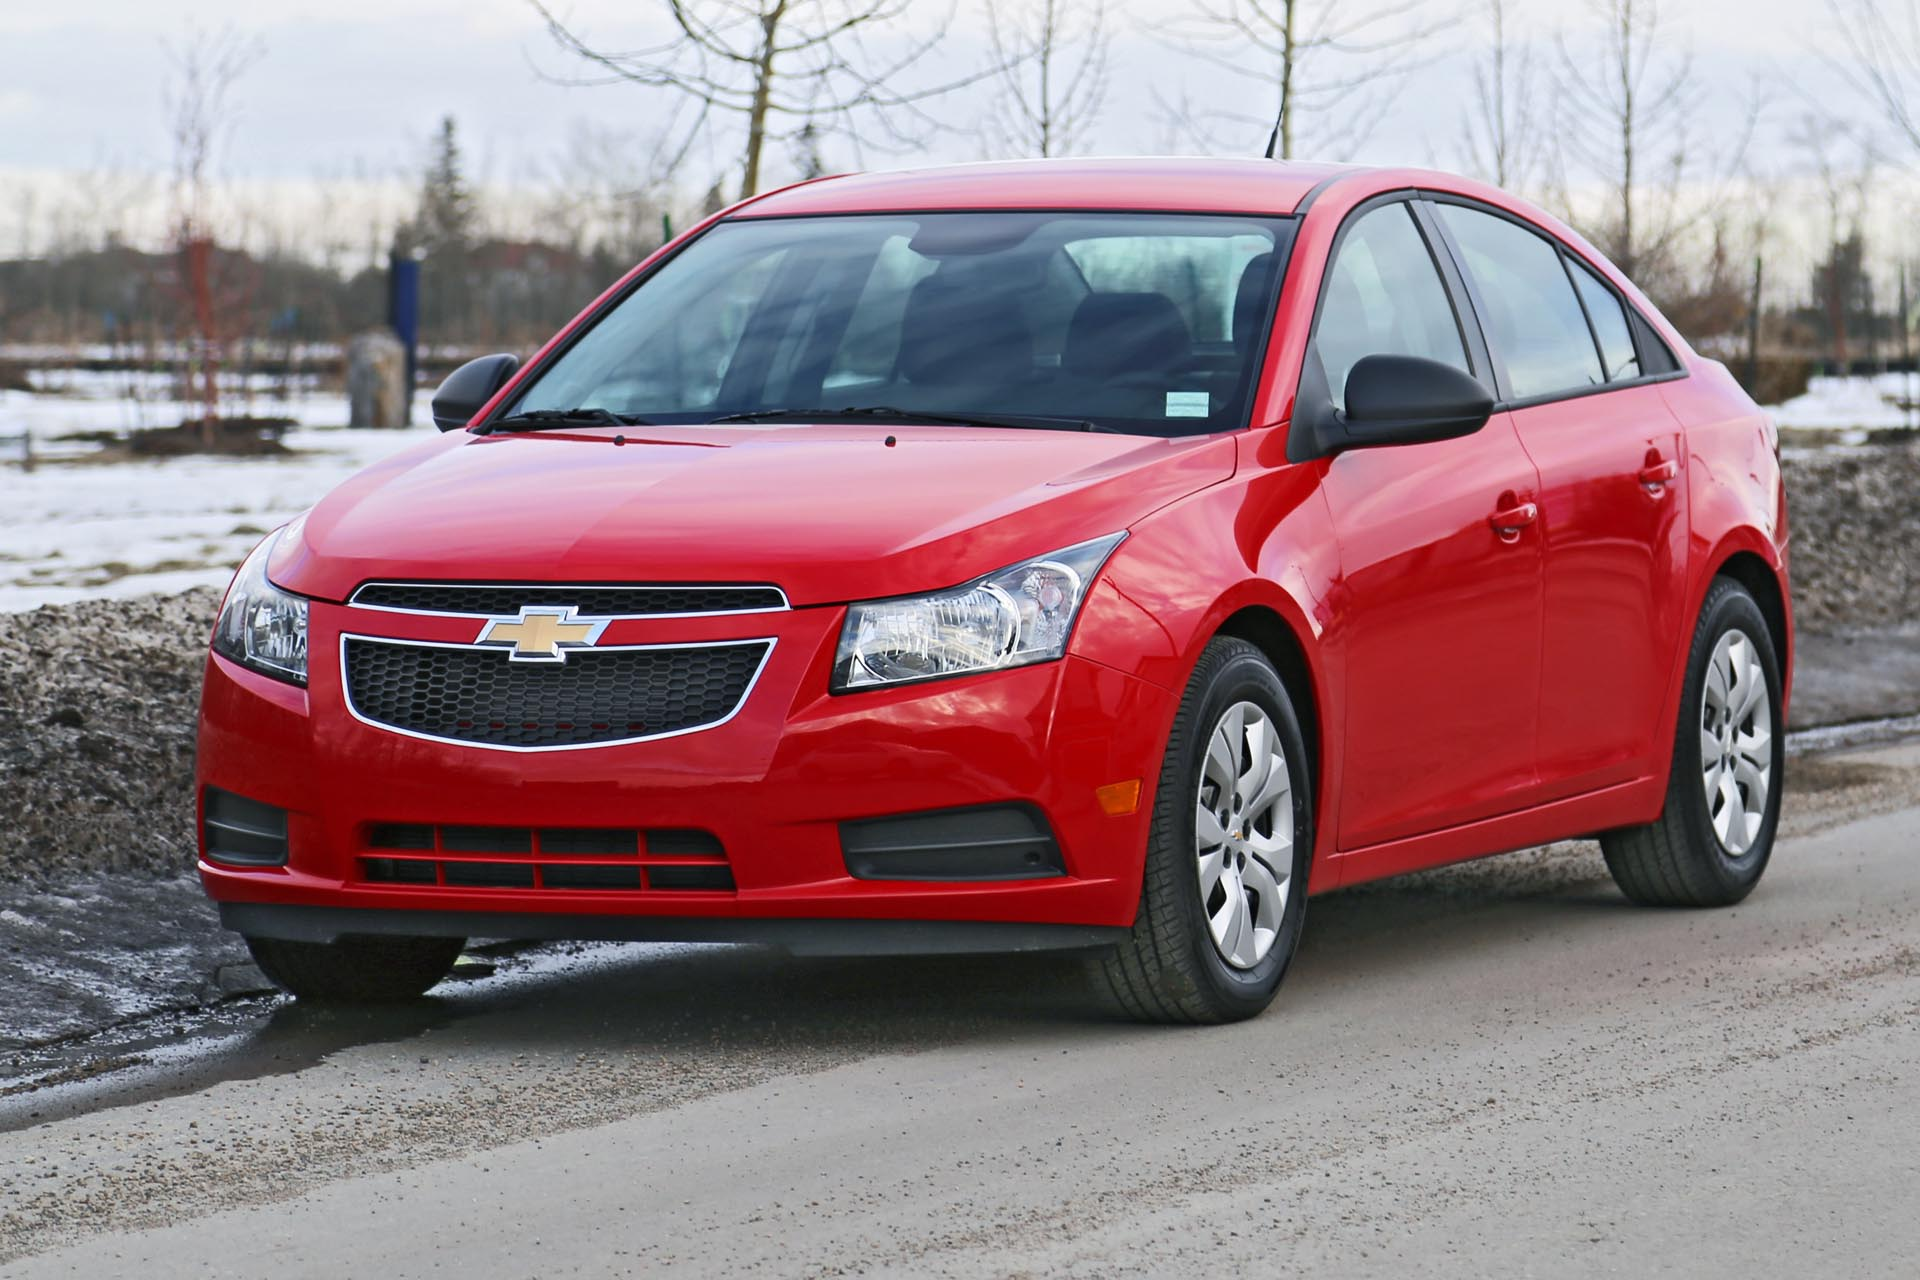 2014 chevrolet cruze. Black Bedroom Furniture Sets. Home Design Ideas